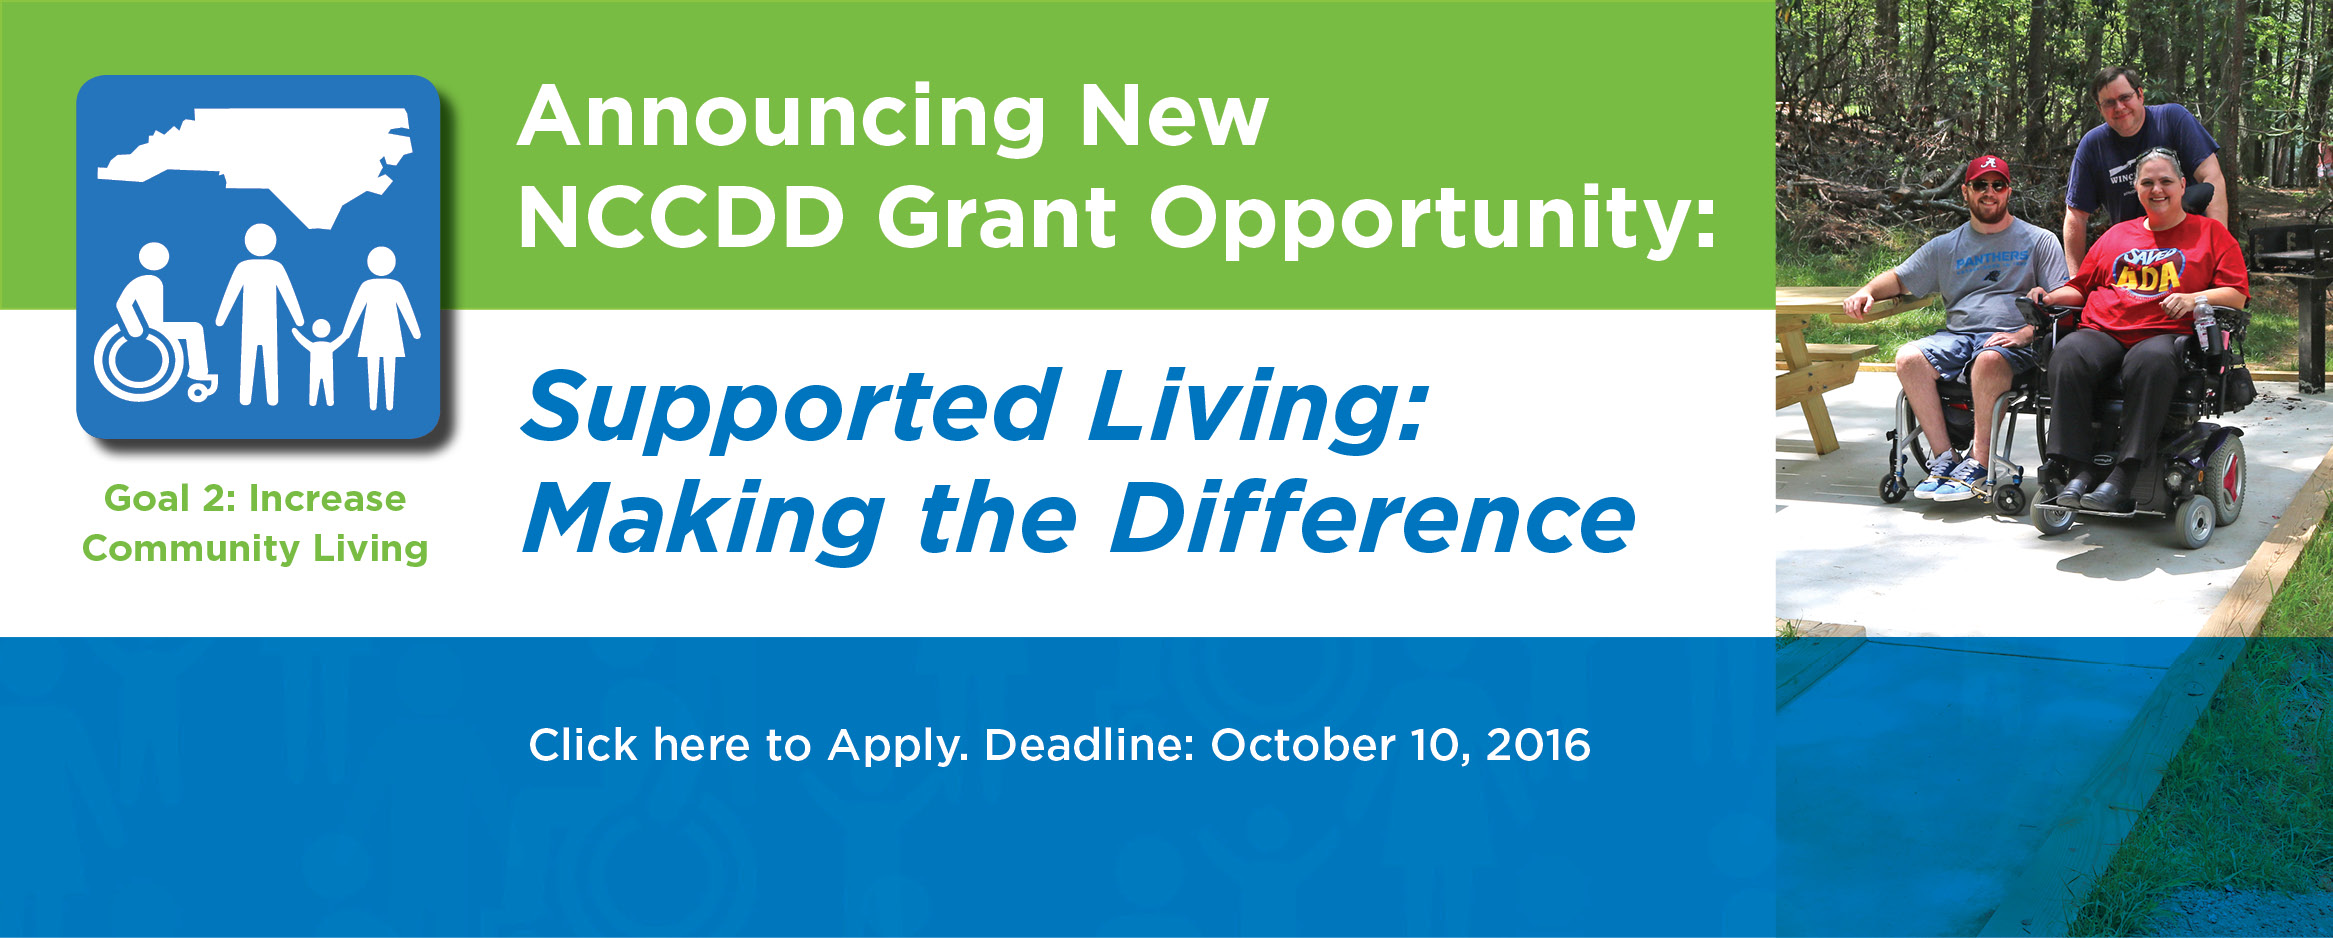 Announcing New NCCDD Grant Opportunity: Supported Living: Making the Difference. Click here to Apply. Deadline: October 10, 2016